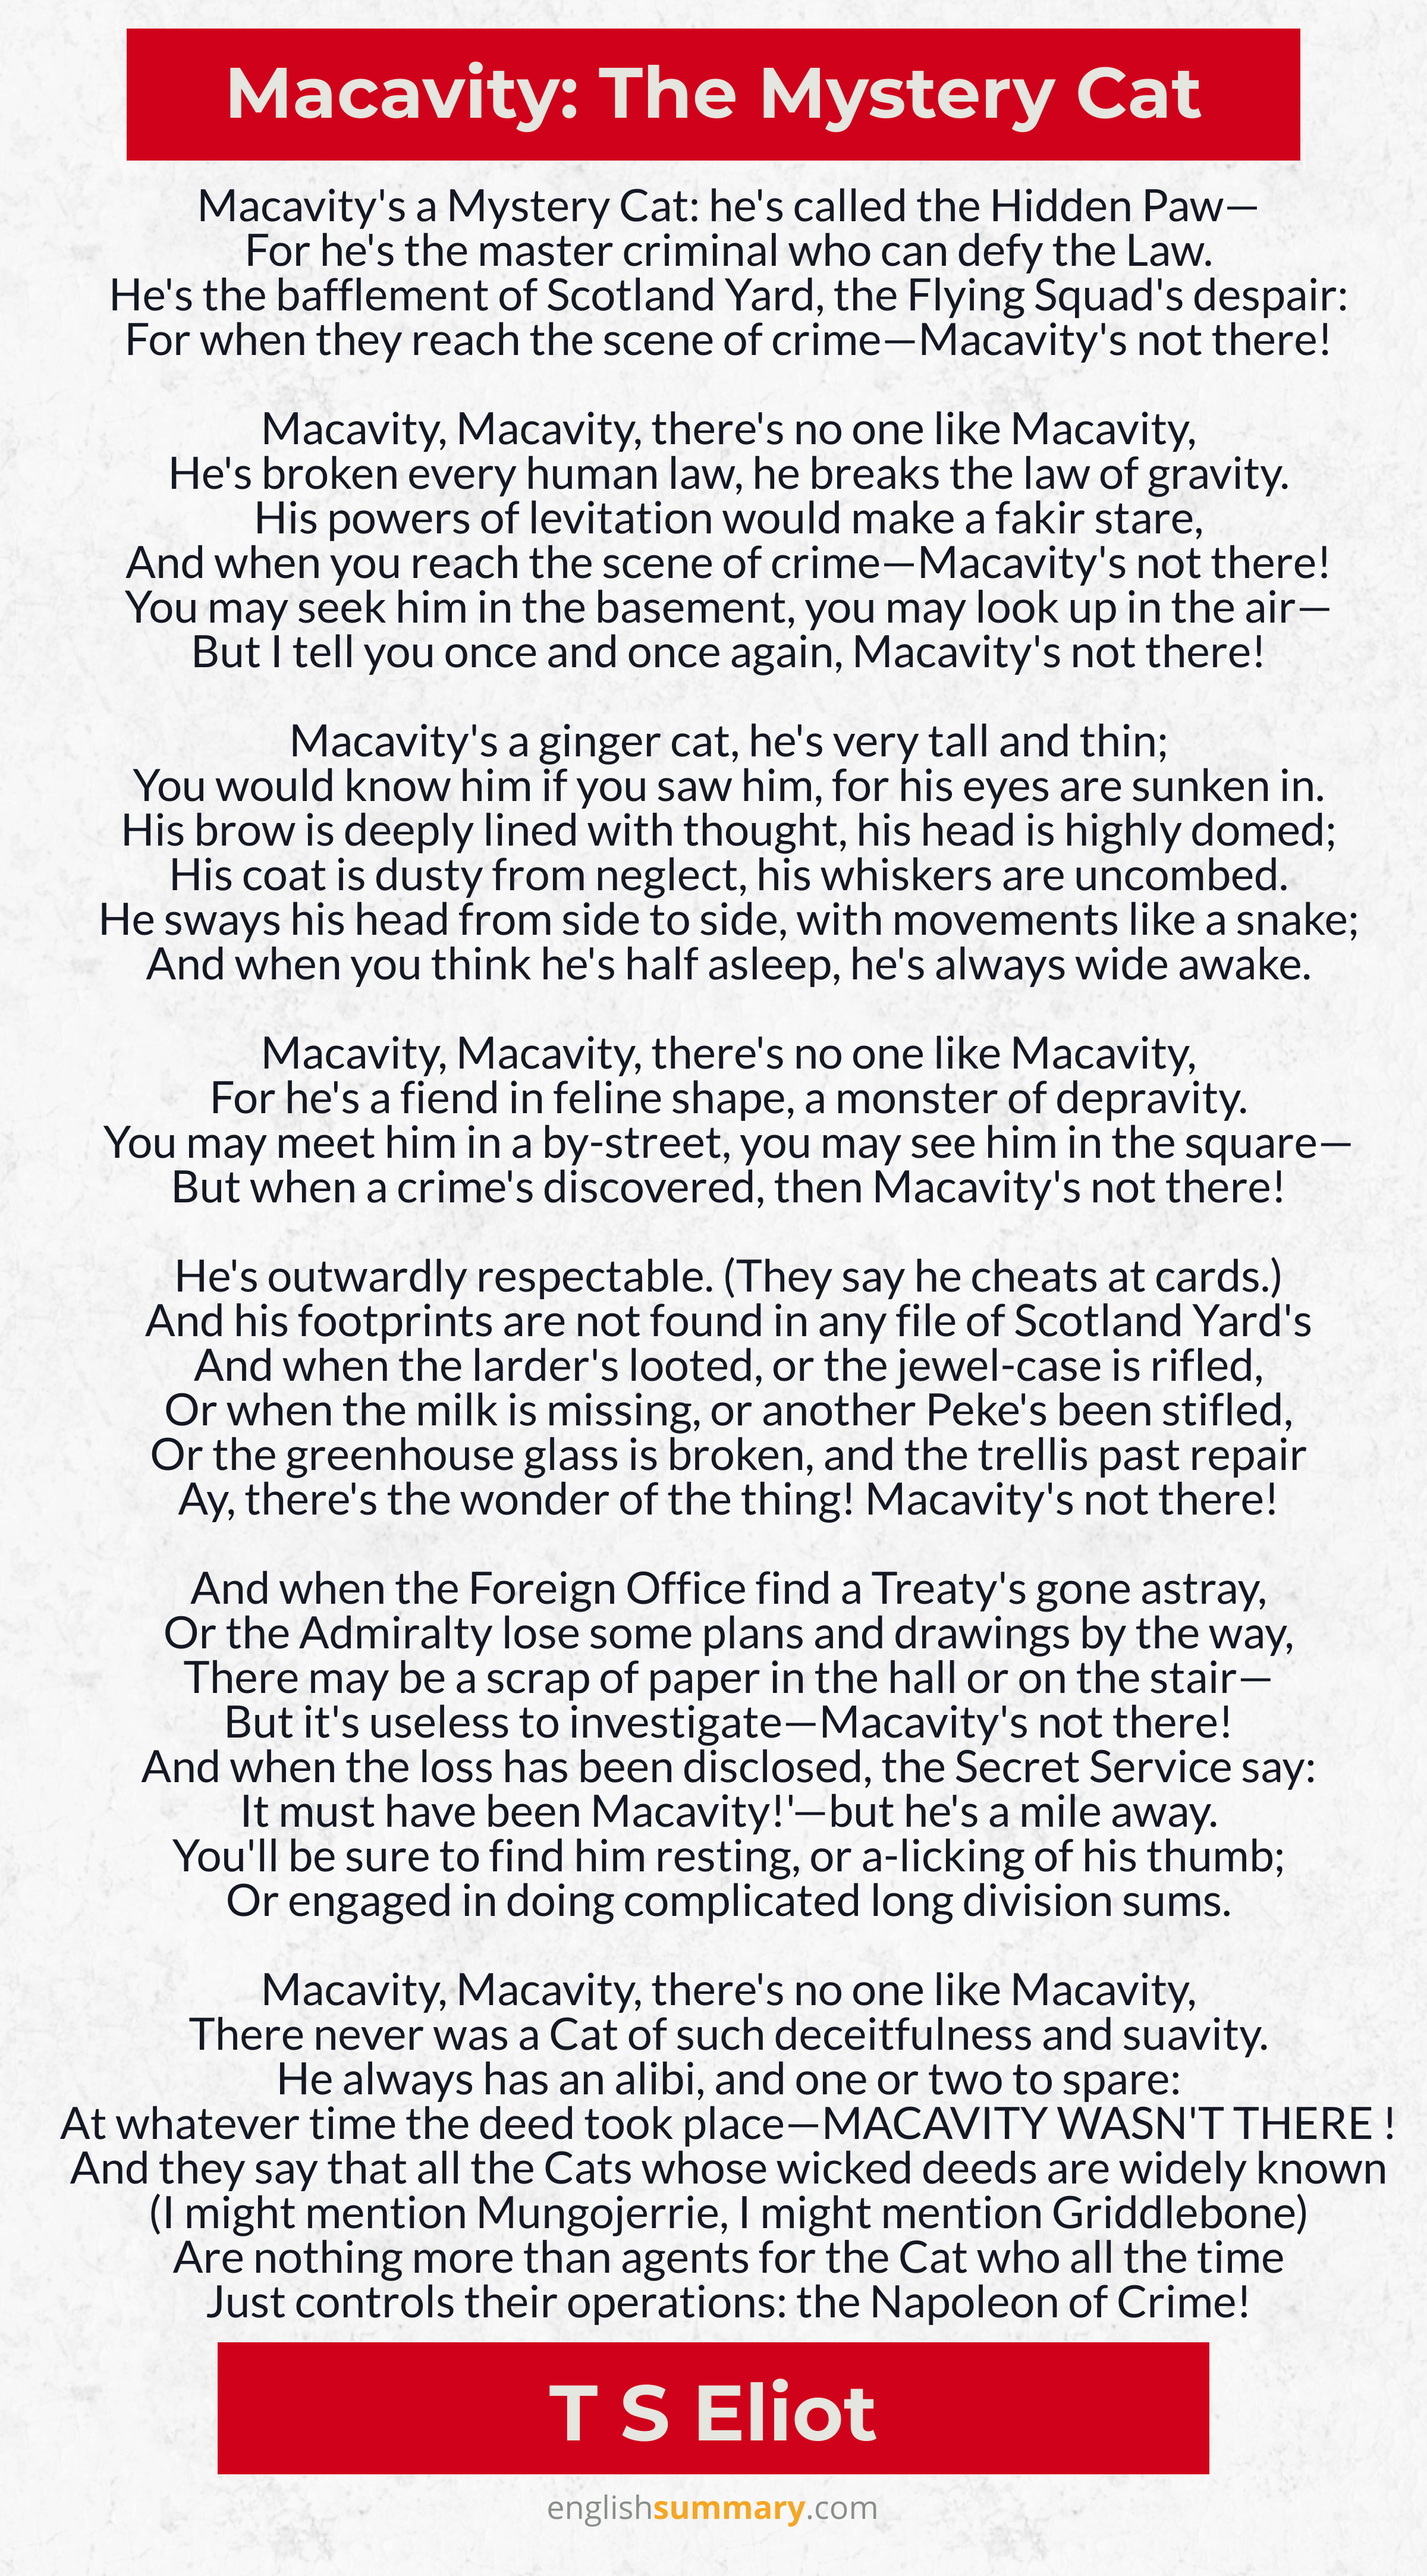 Macavity The Mystery Cat Poem by TS Eliot in 2020 Cat